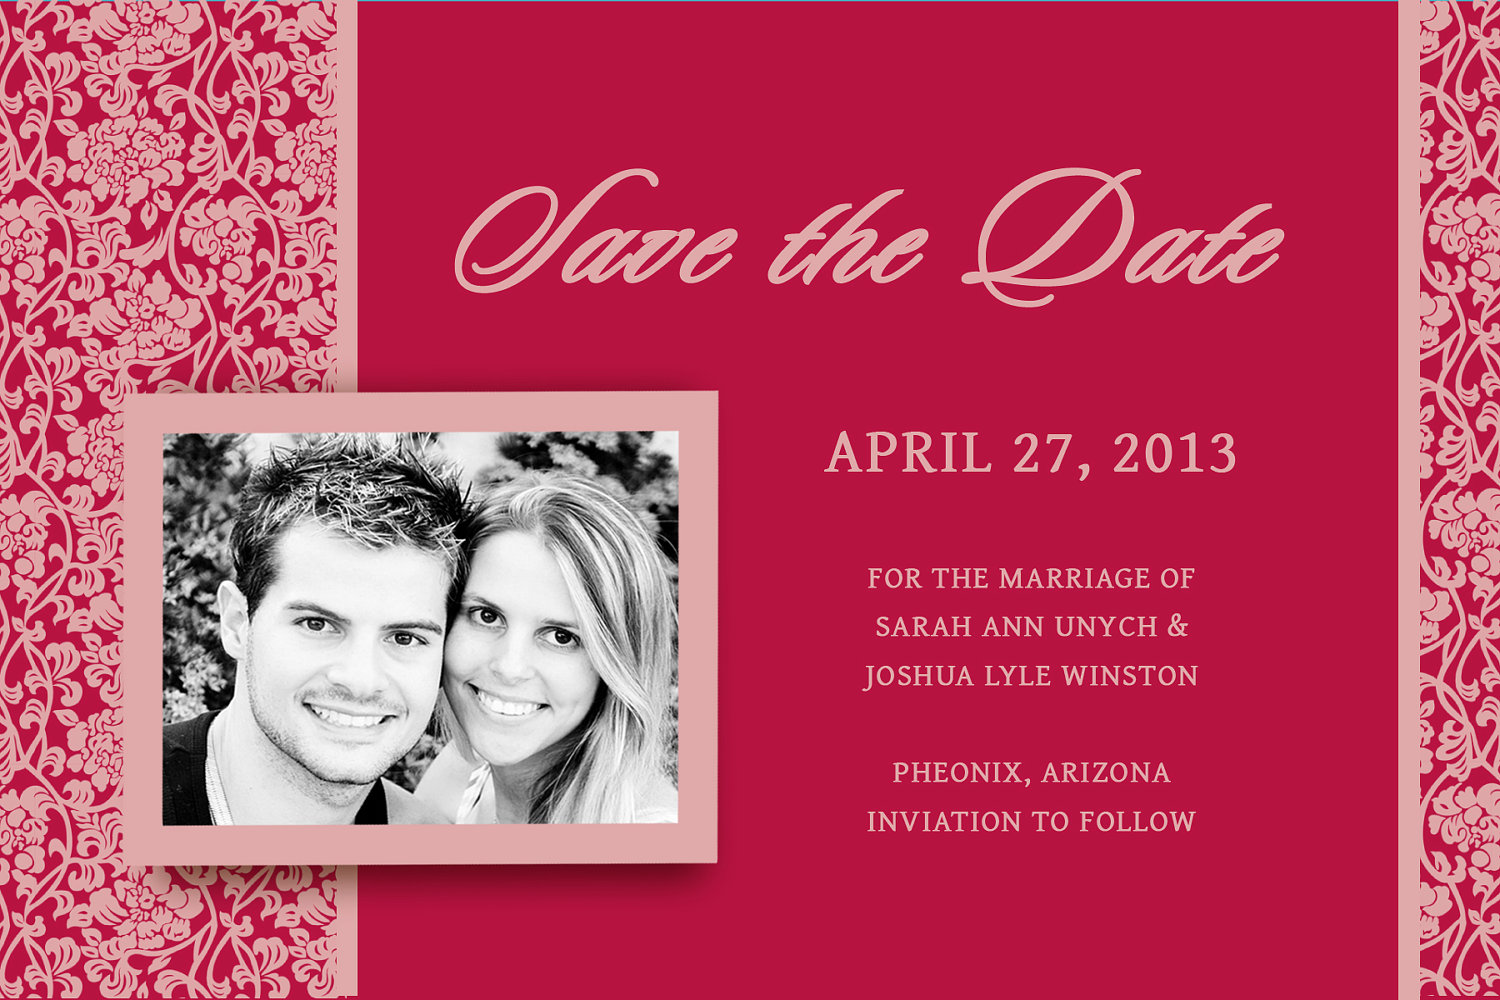 Elegant and Beautiful Wedding Invitations for Free: Great Wedding ...